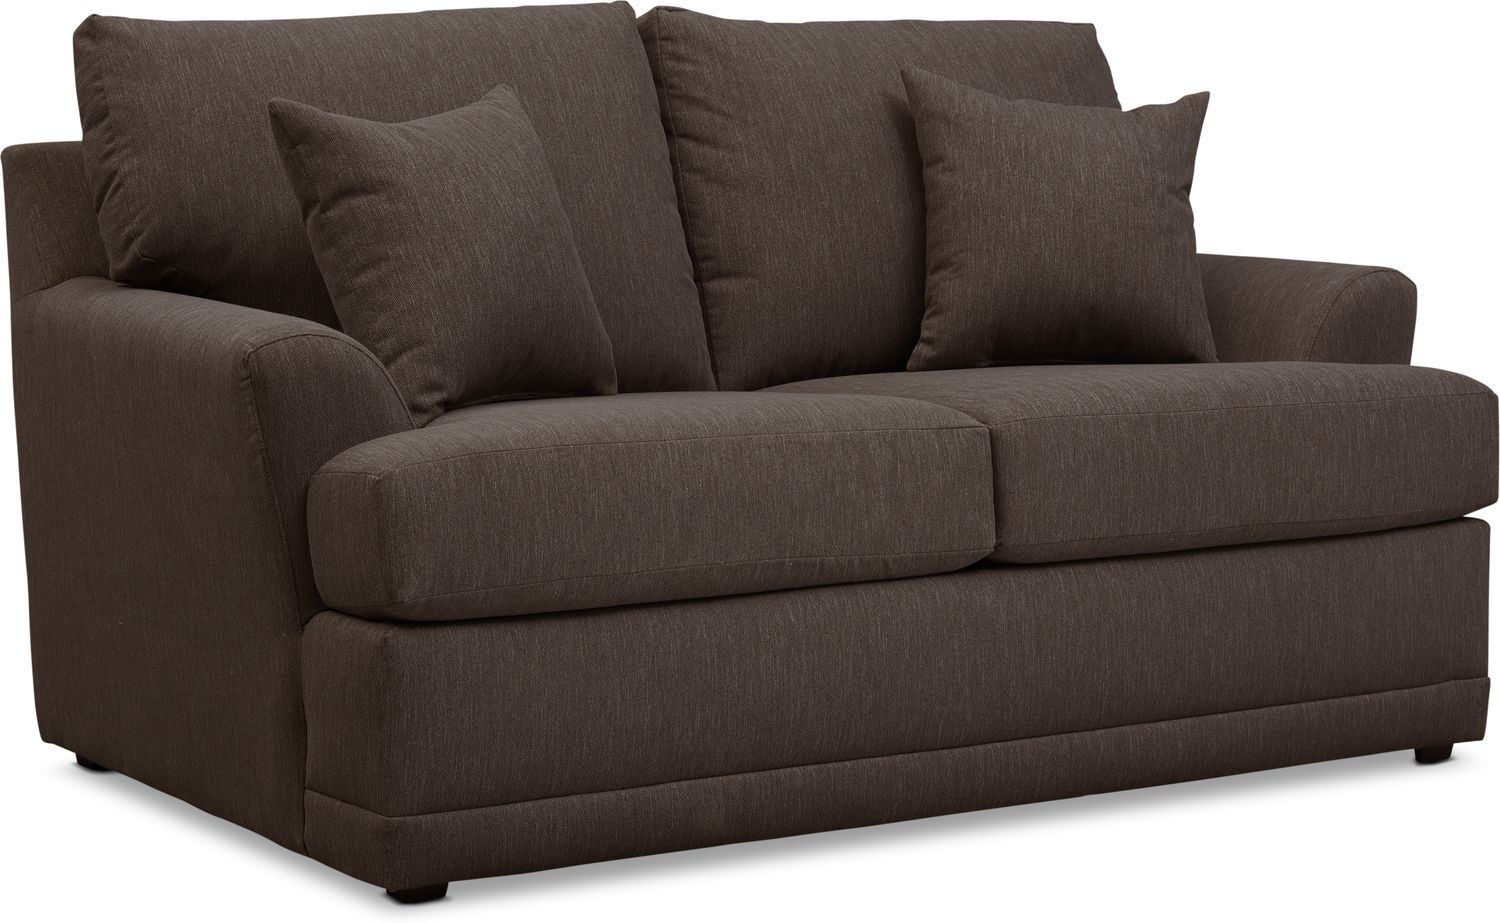 Living Room Furniture - Berkeley Loveseat